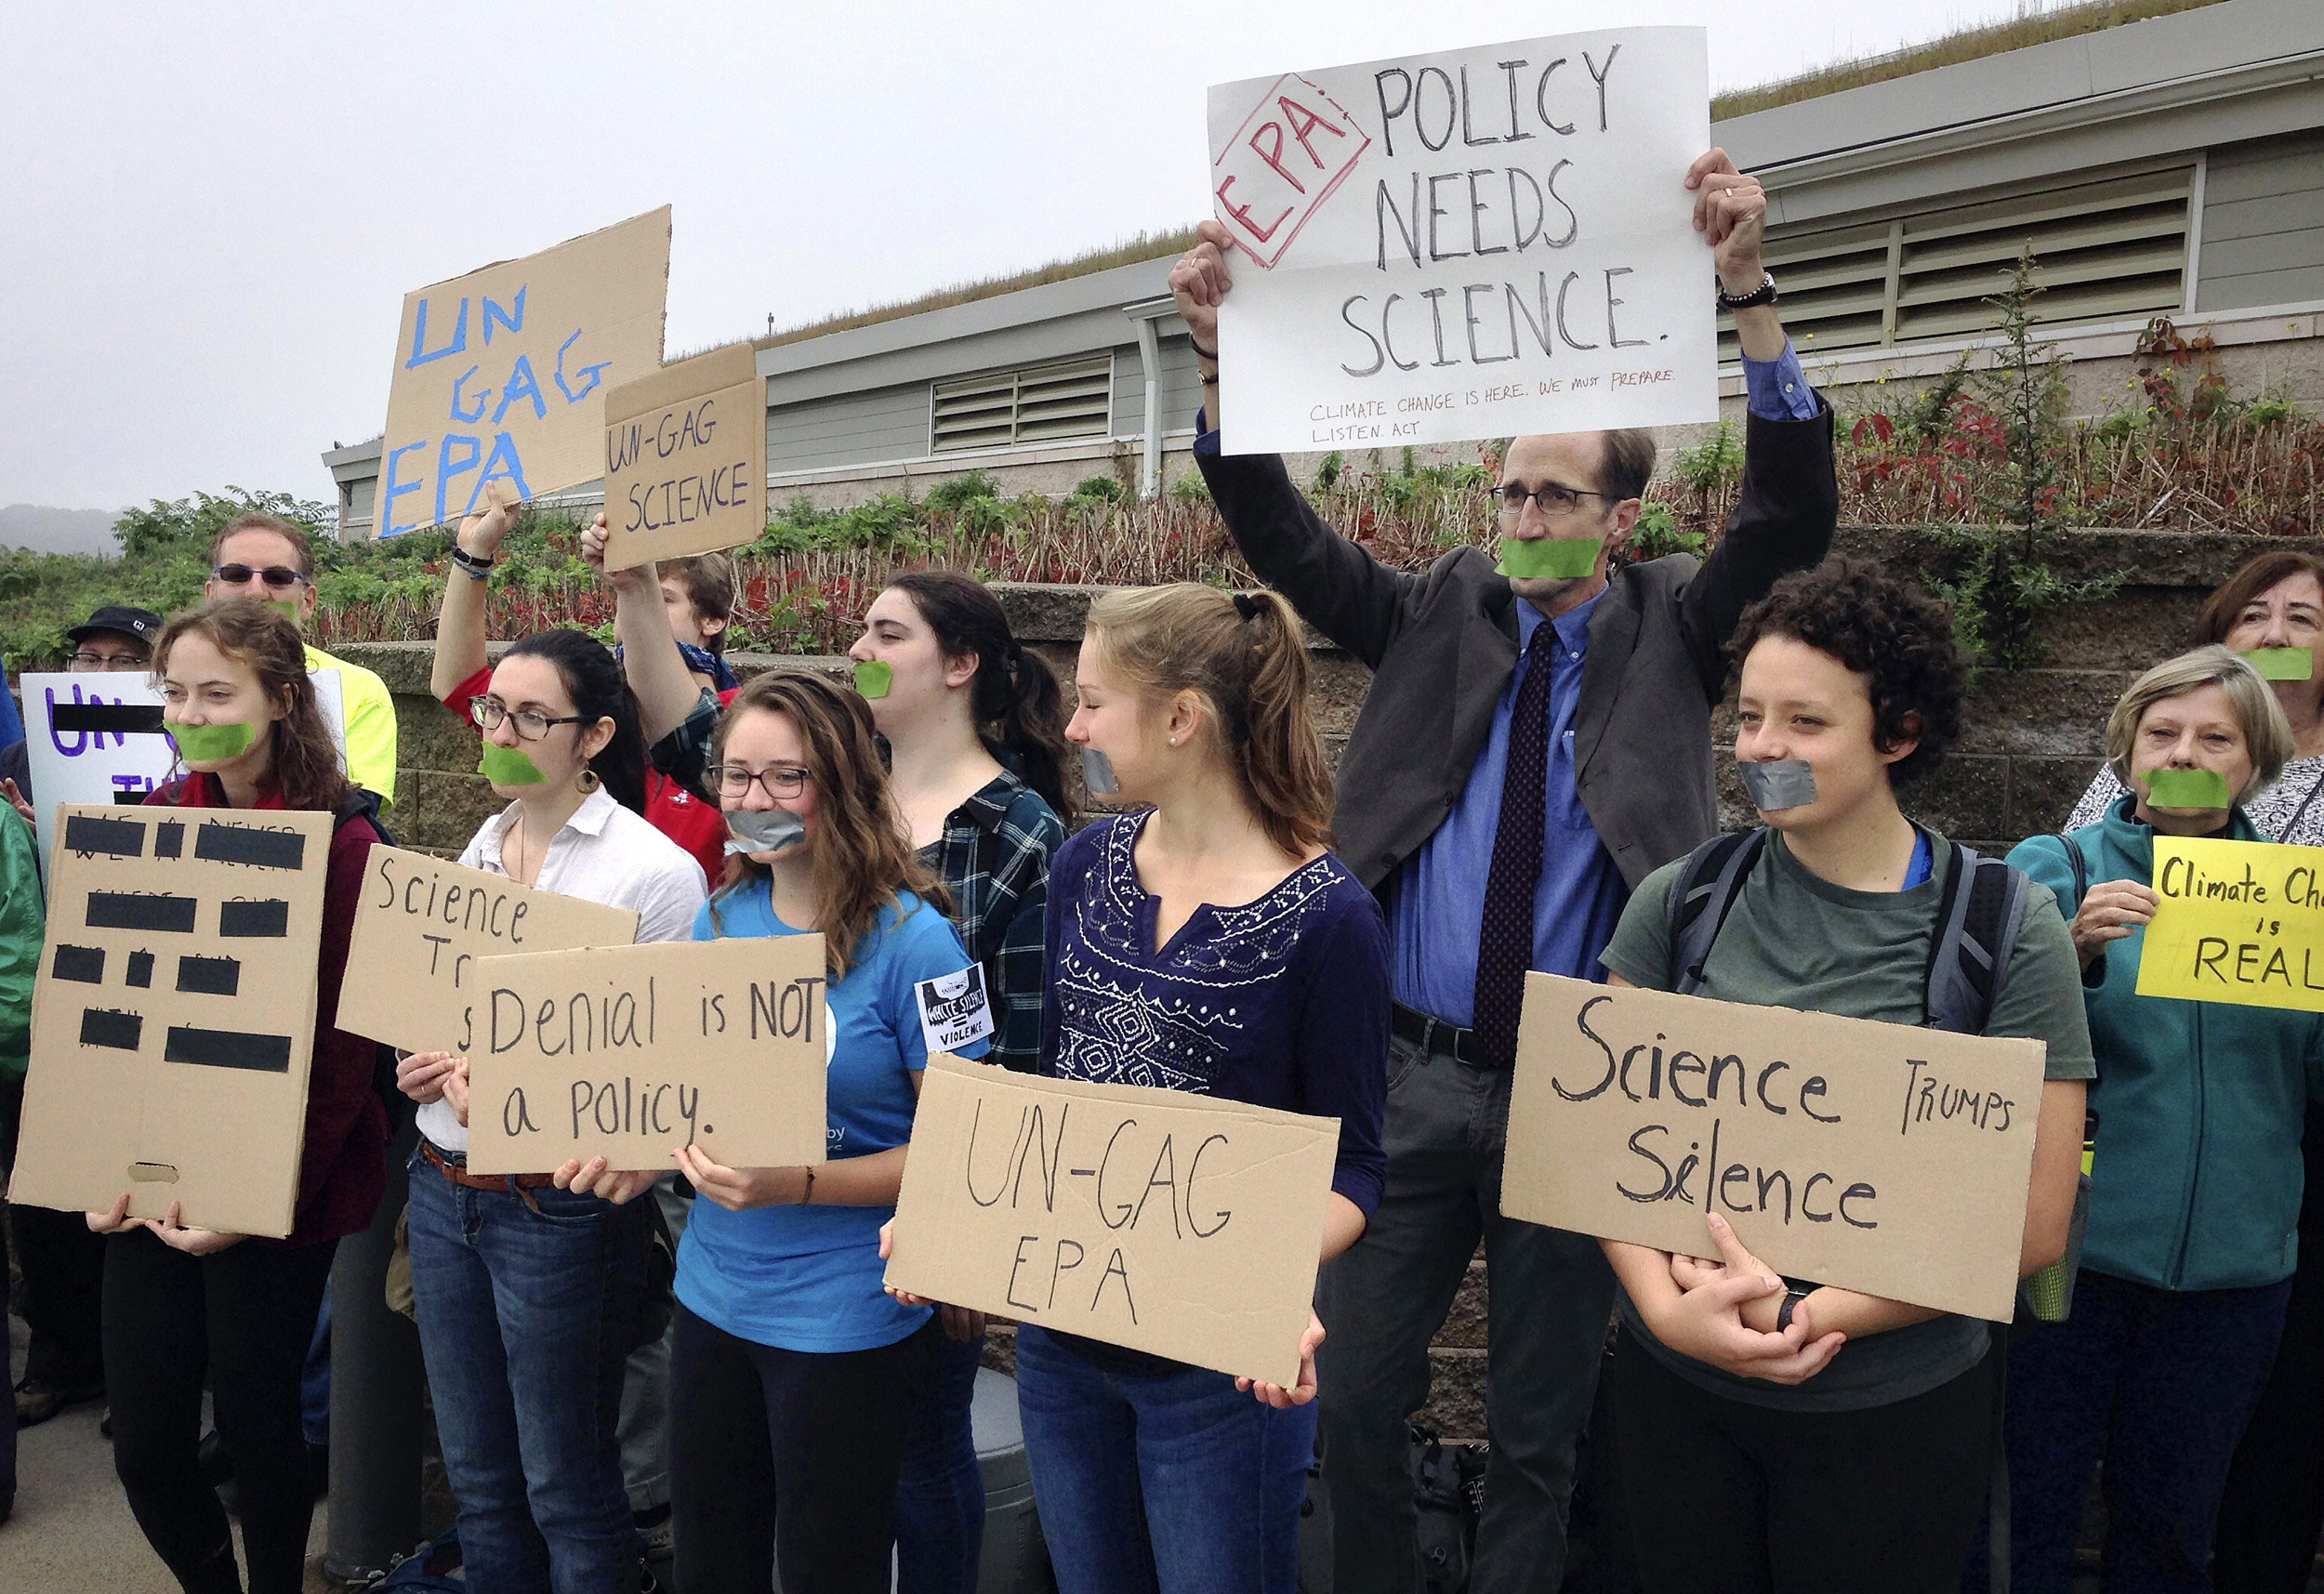 Image: Protesters gather outside a meeting where a climate change report was scheduled to be released in Providence